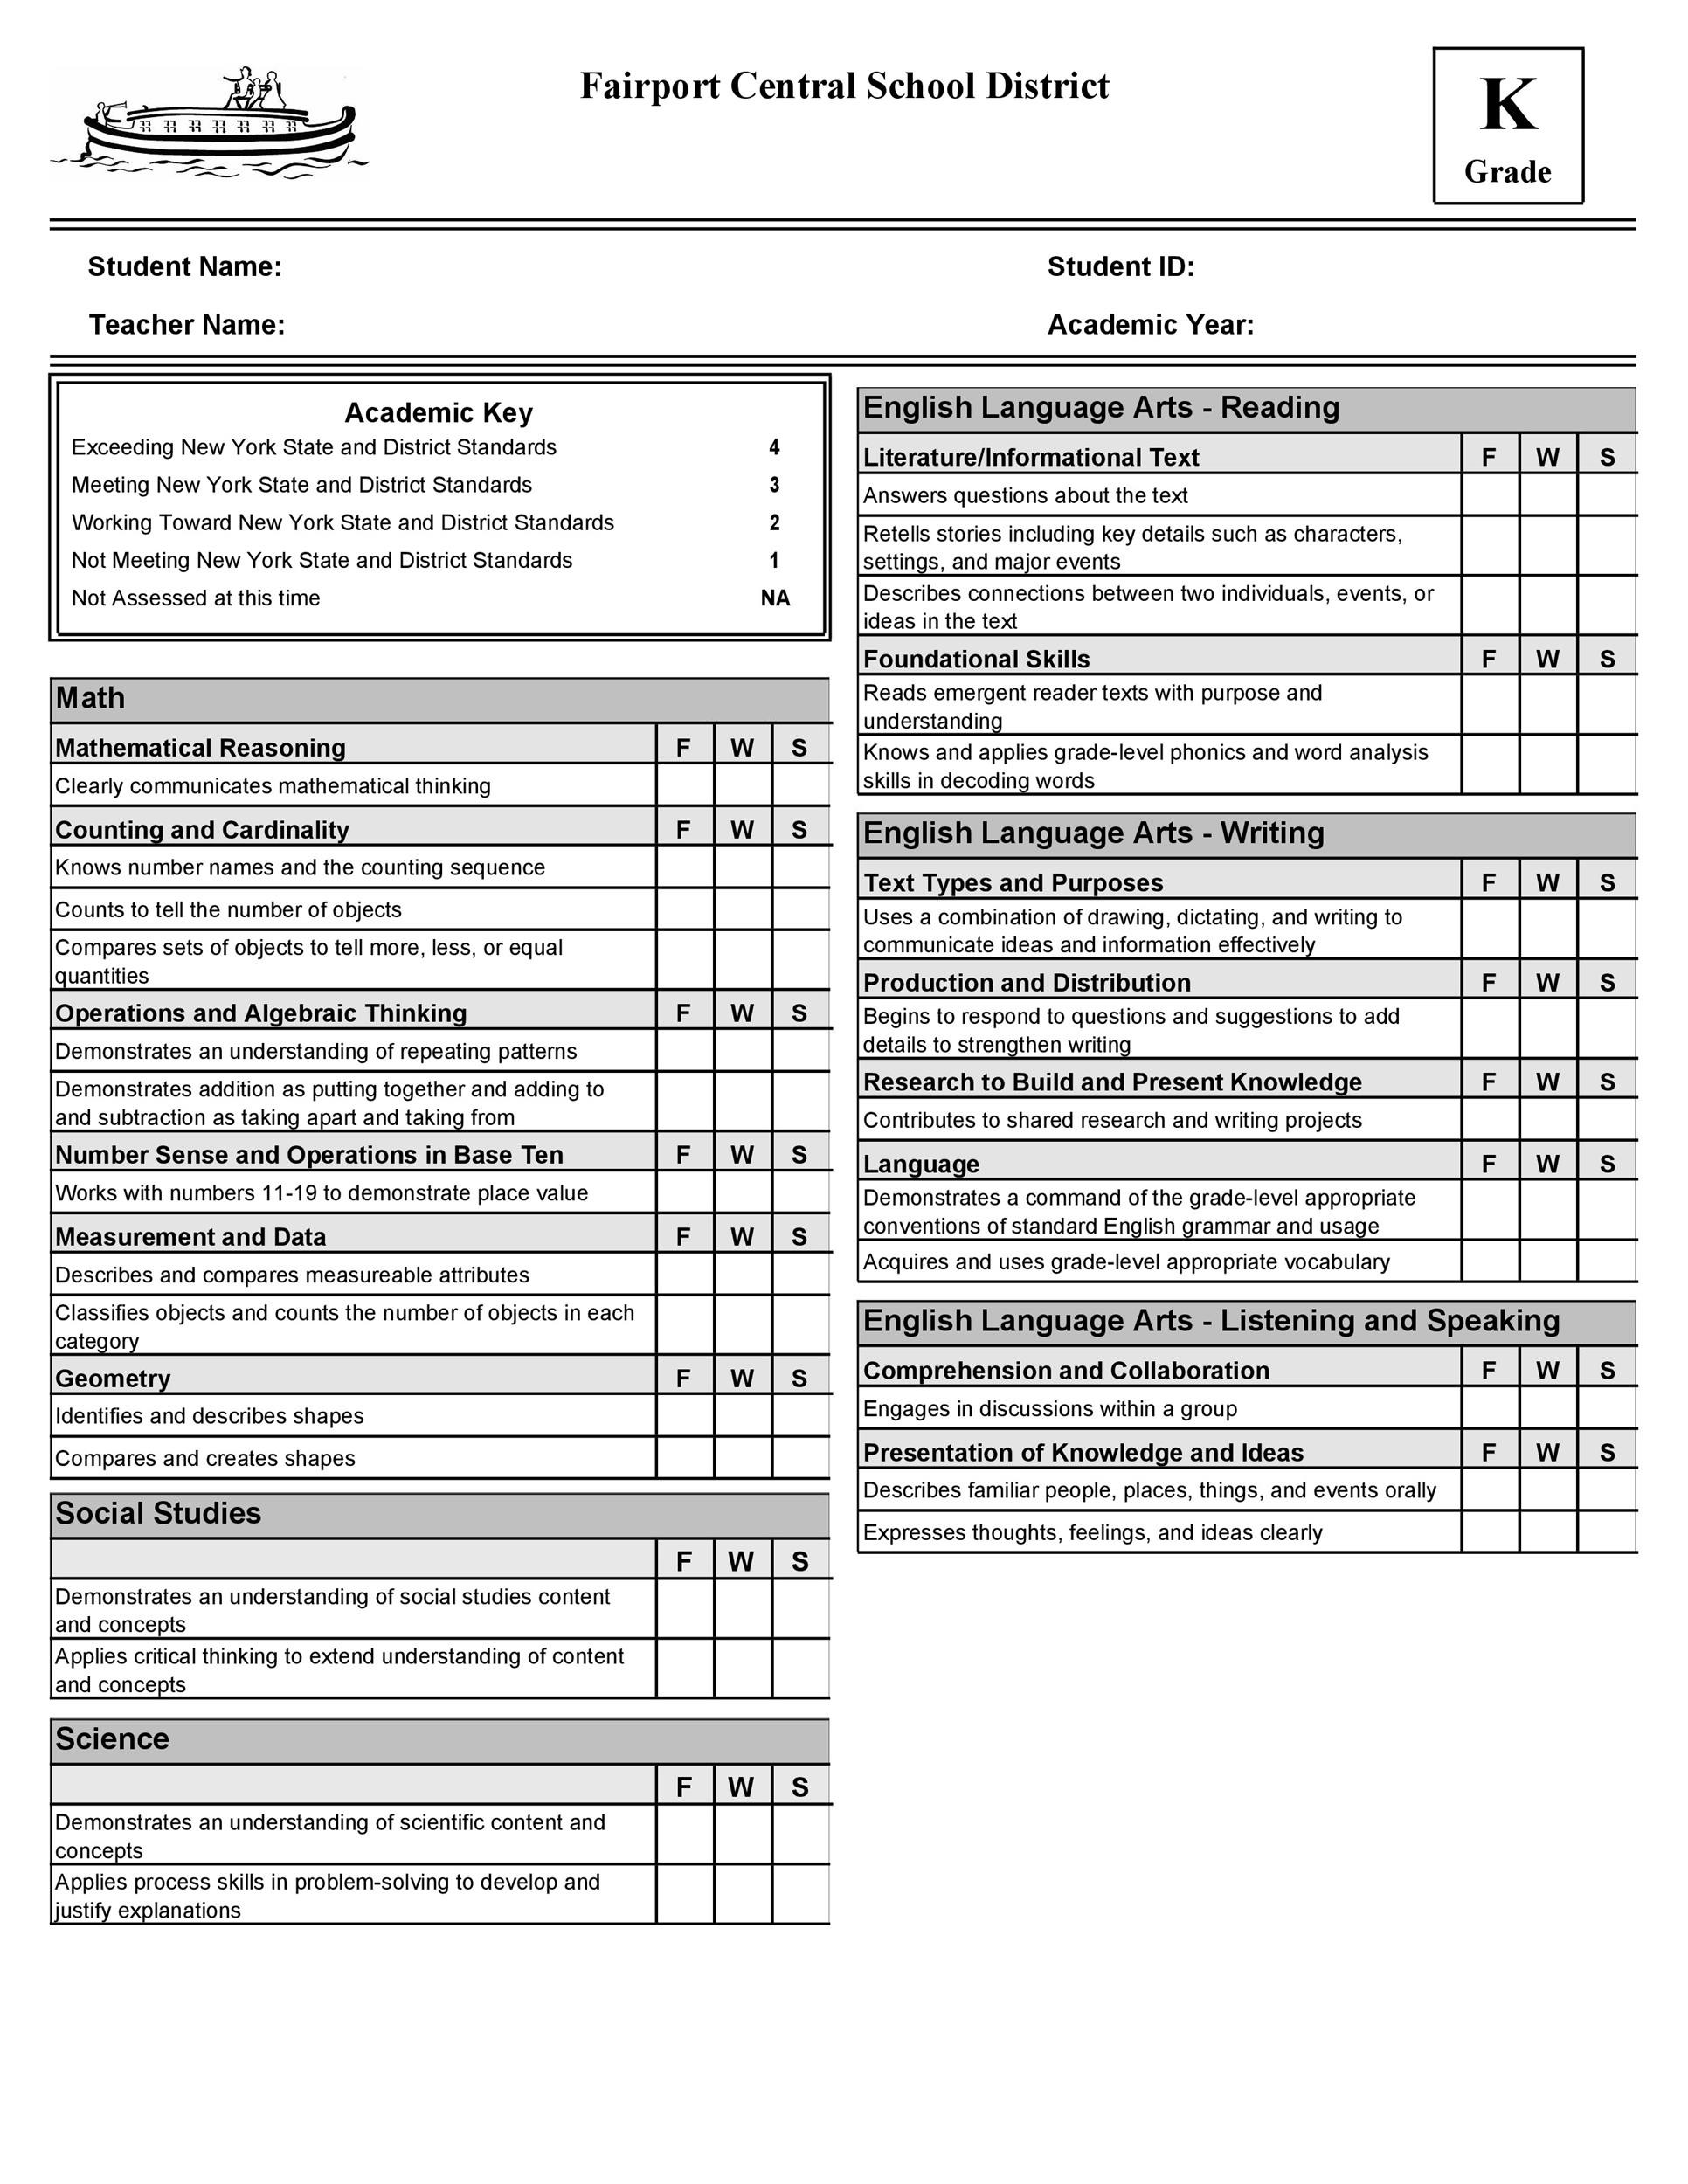 Free Report Card Template 15